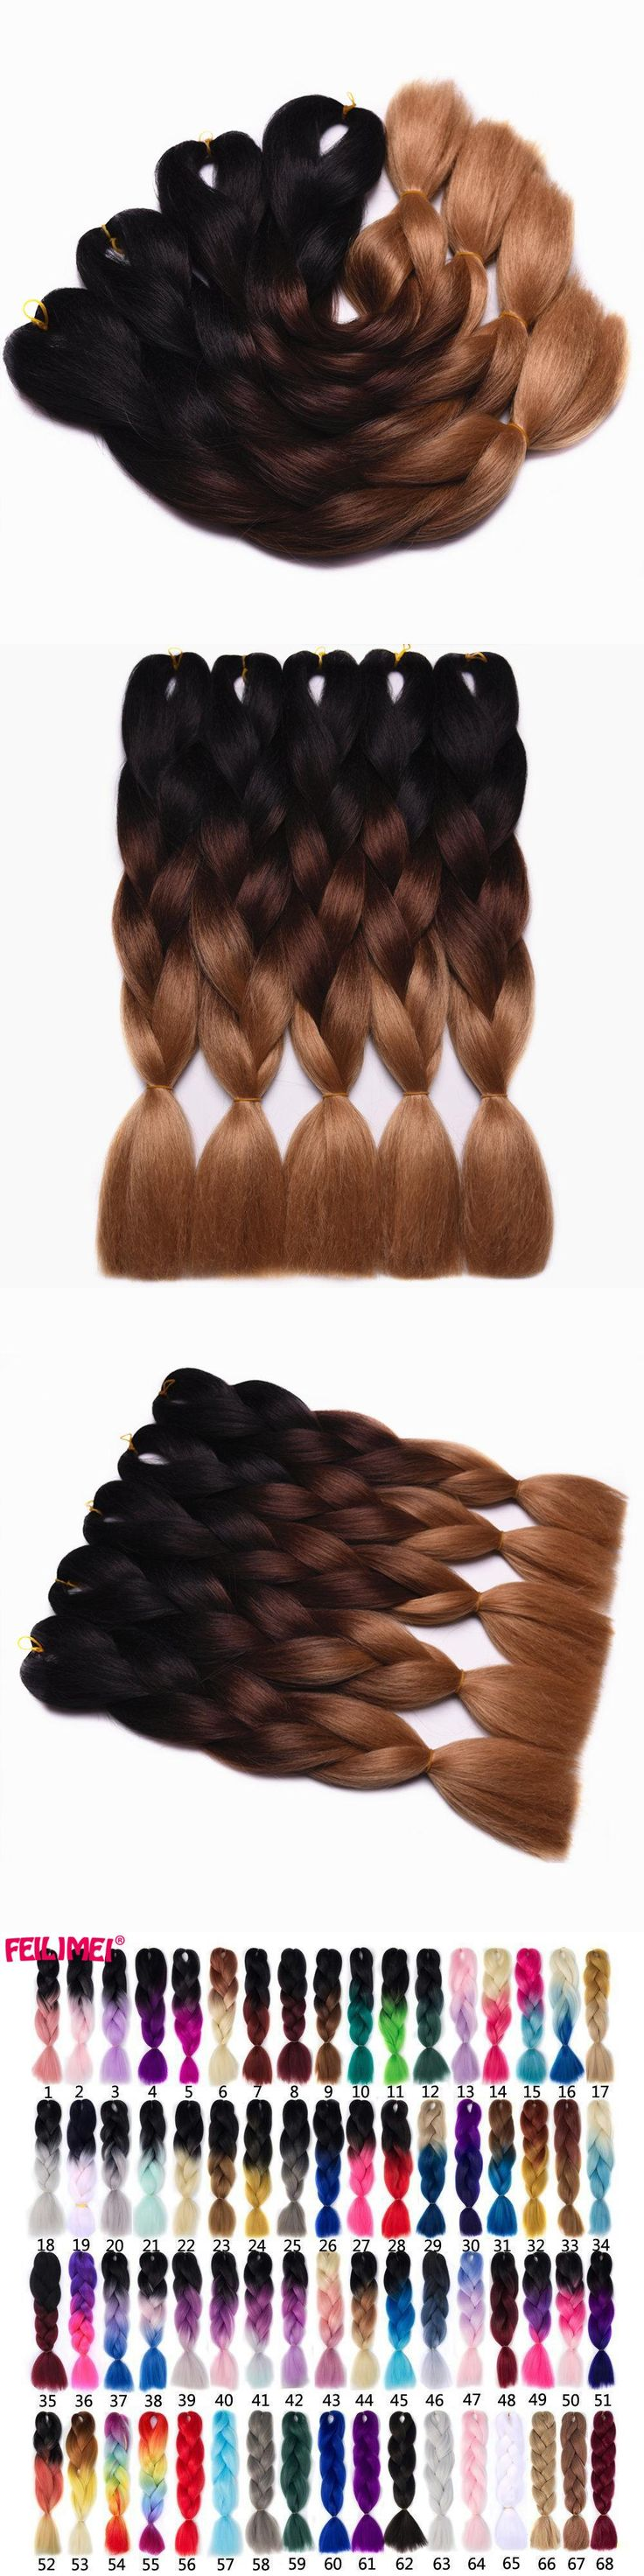 "Feilimei Brown Braiding Hair Extensions Synthetic jumbo Braids 24""(60cm) 100g/pc Two/Three Toned Ombre Crochet Hair Bulk Bundles"